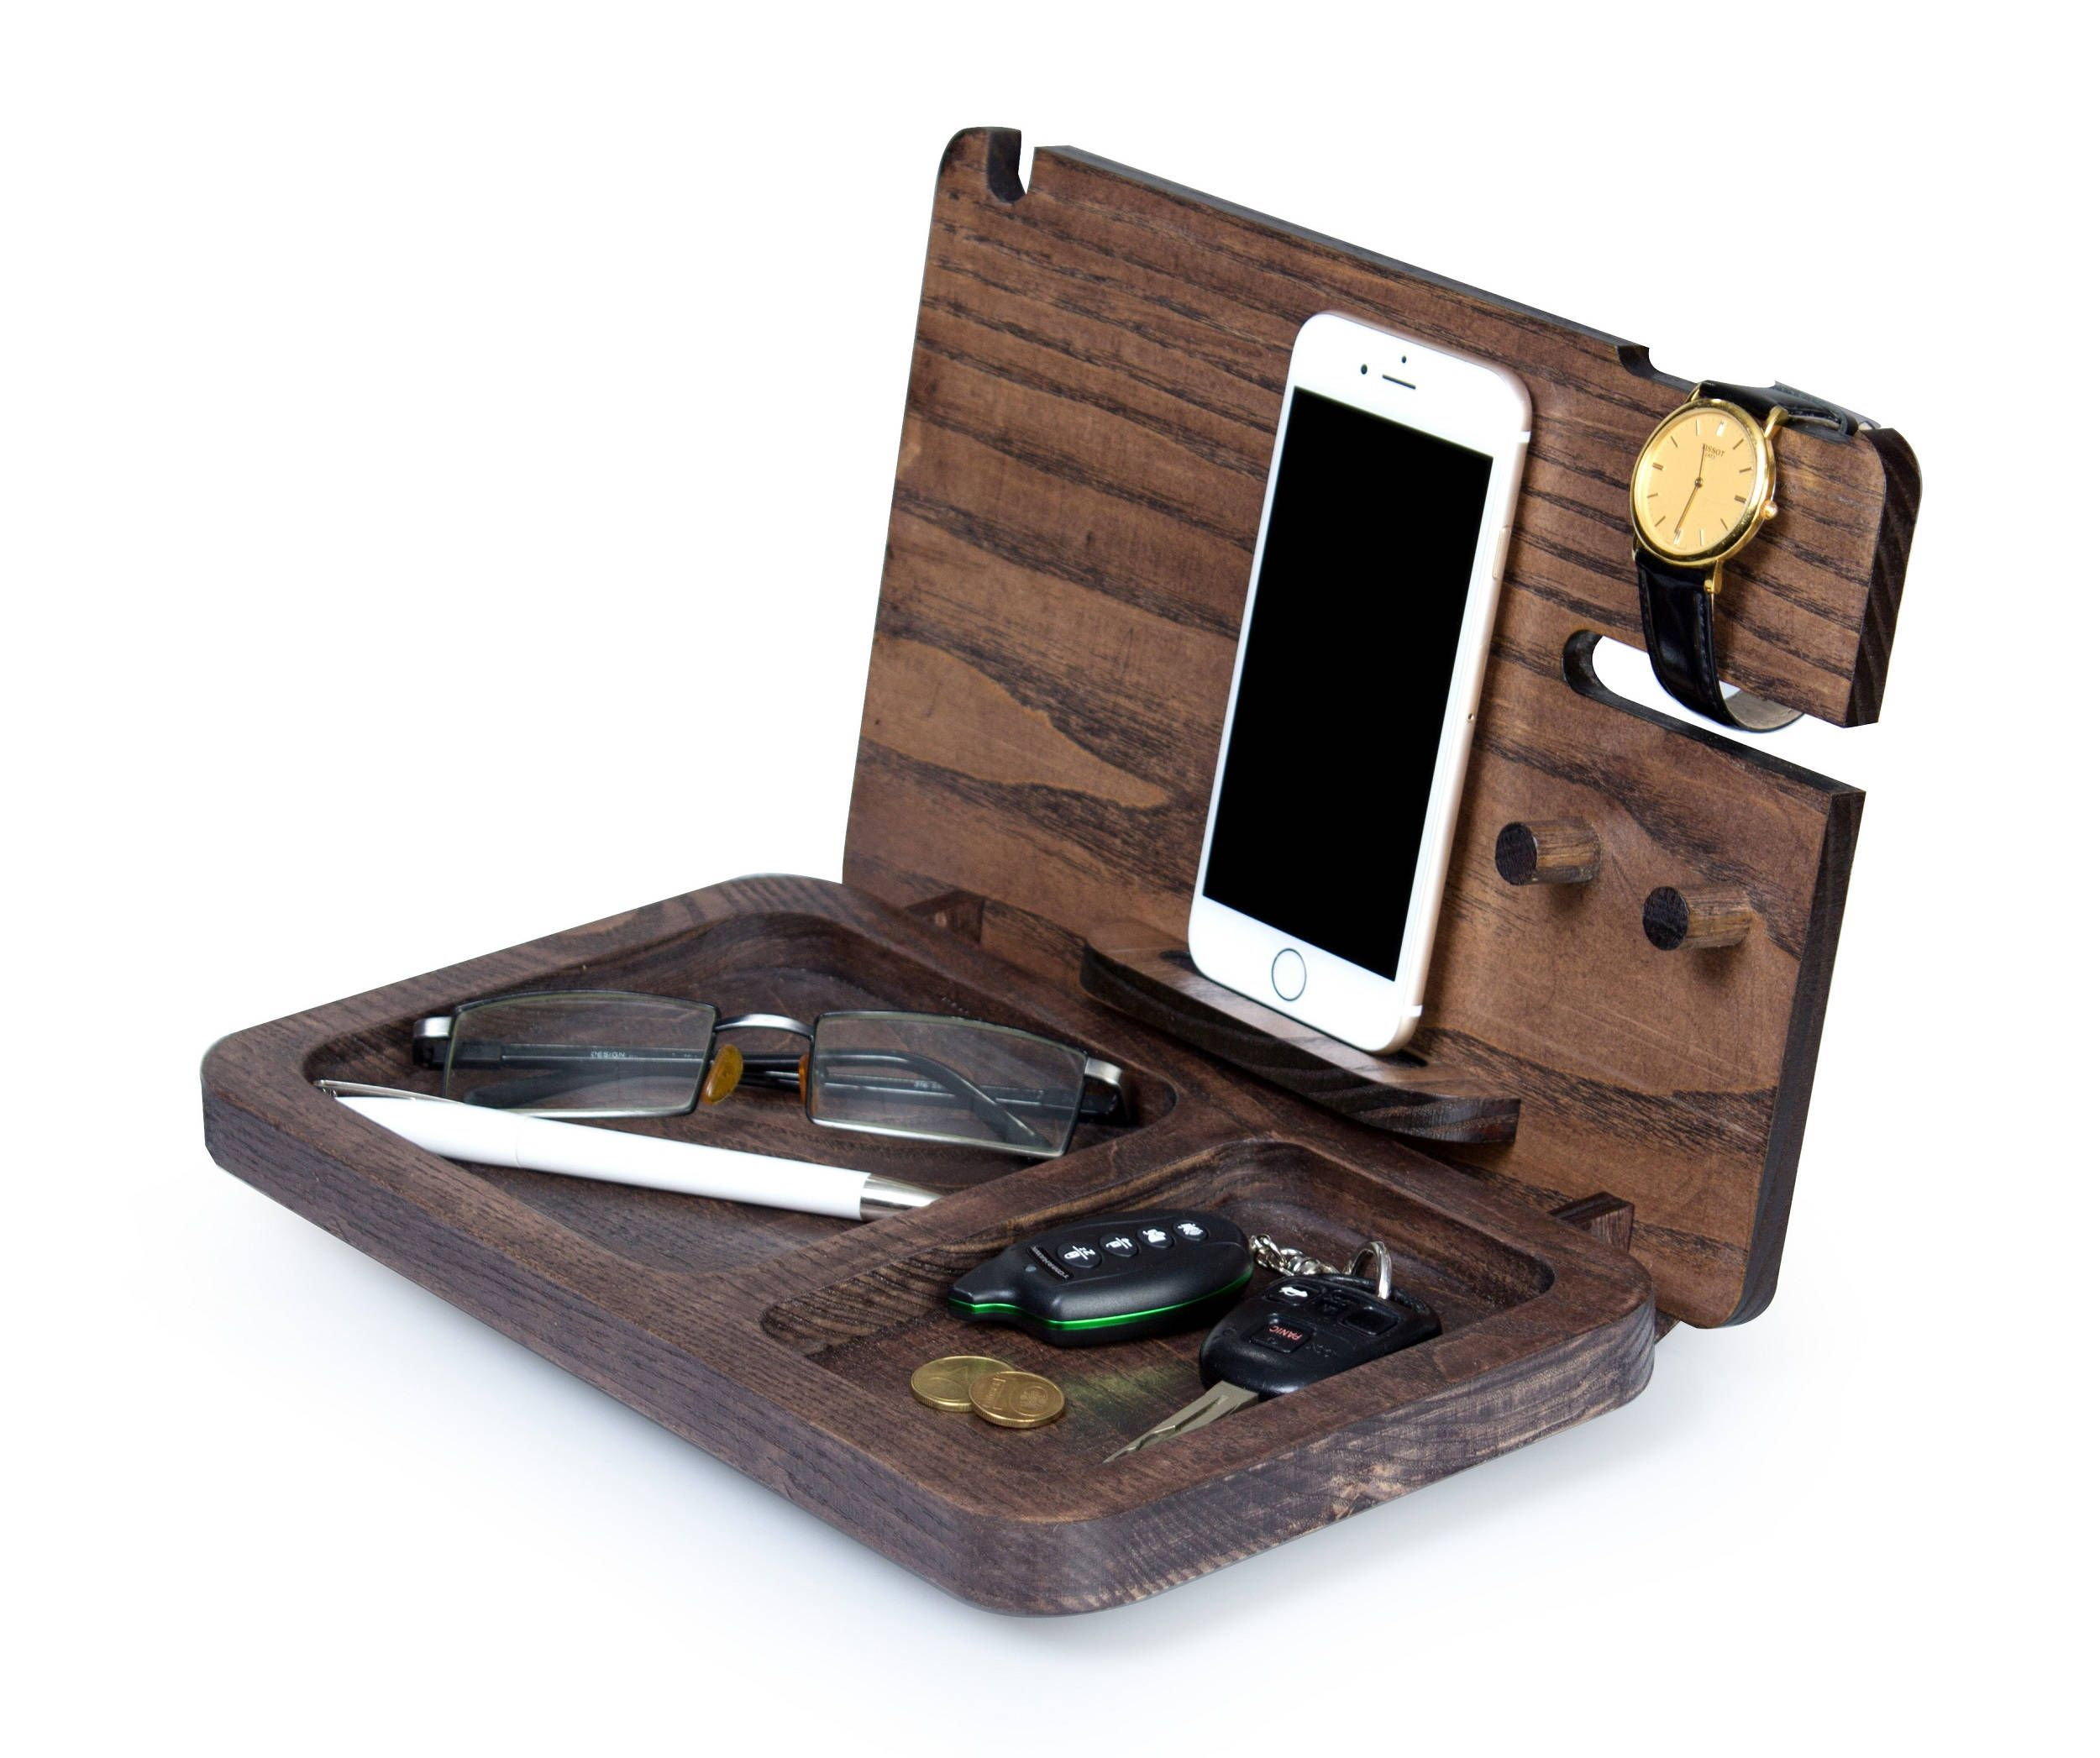 Christmas Gift for men Iphone docking station personalized   wooden ...